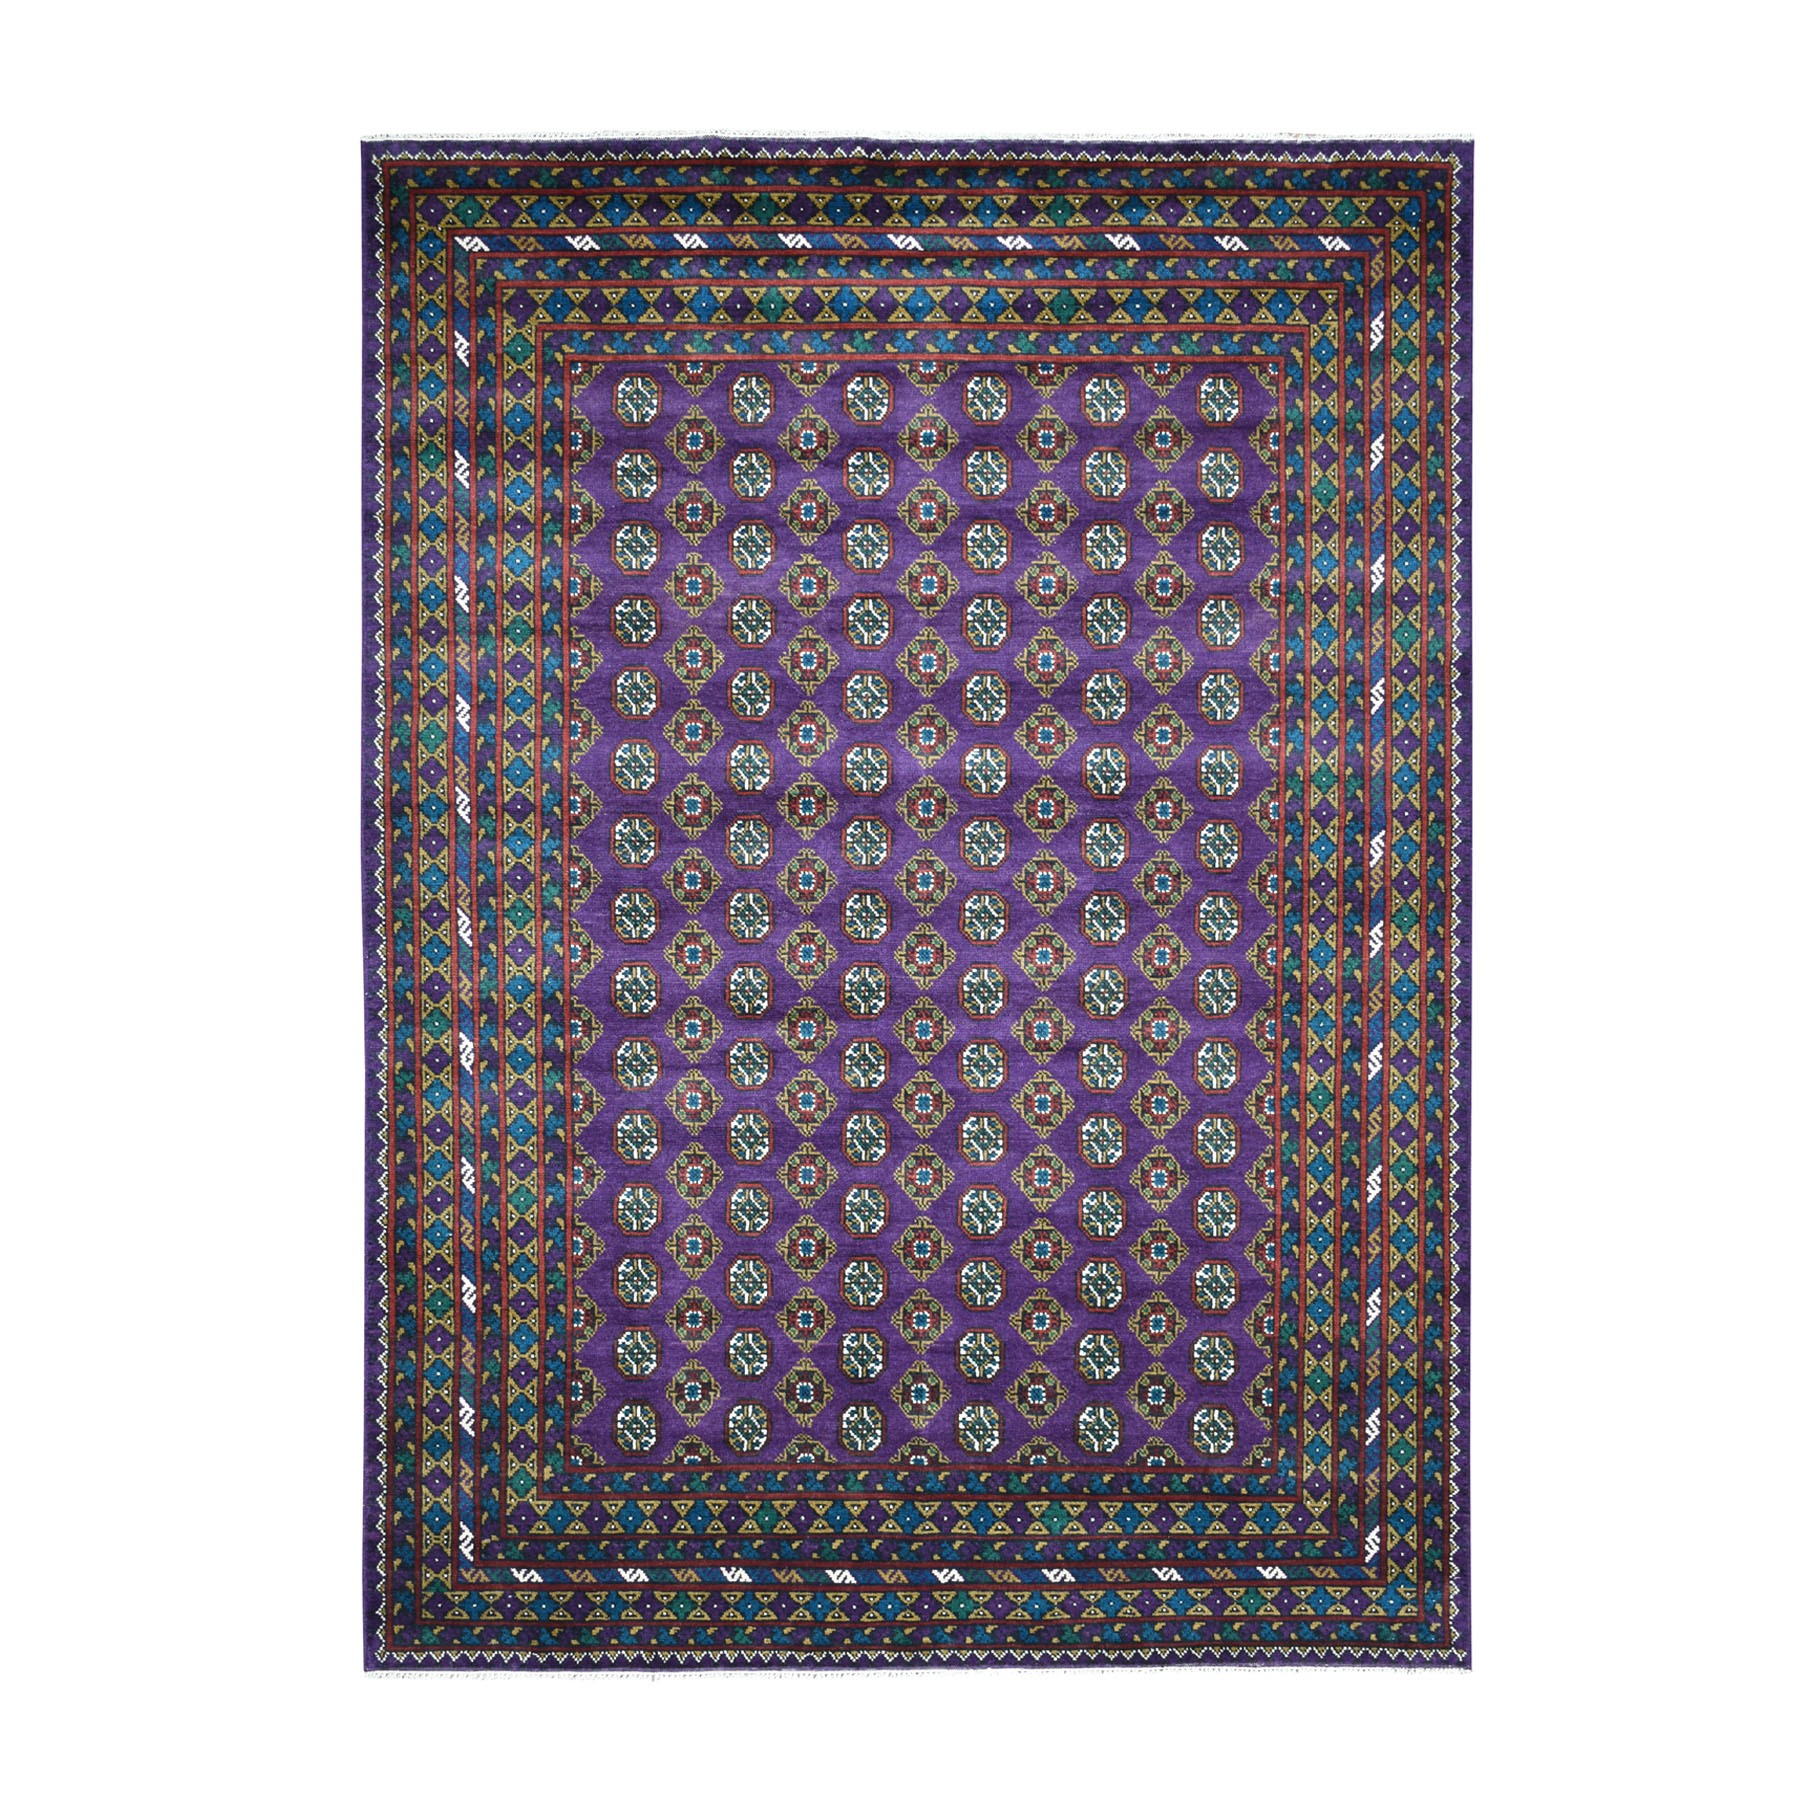 "6'7""x9'4"" Purple Colorful Afghan Baluch Hand Knotted Tribal Design Pure Wool Oriental Rug"